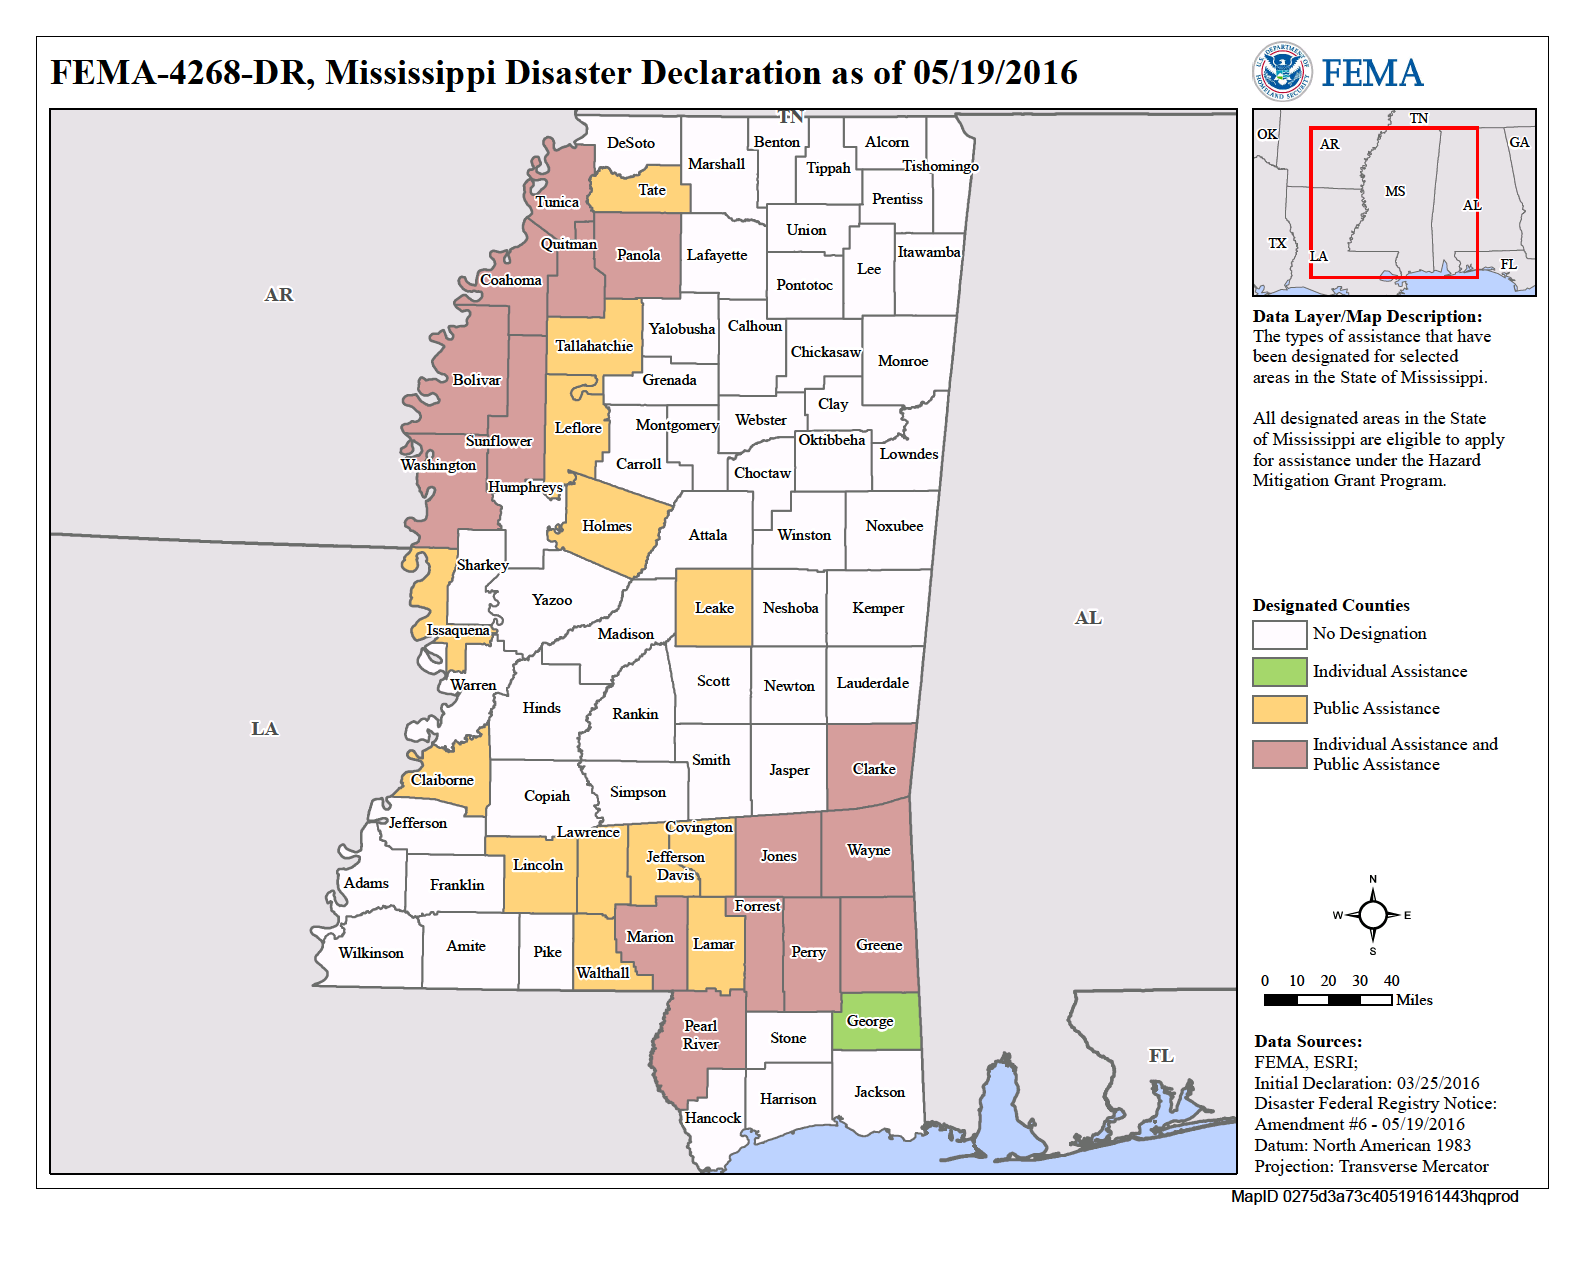 Mississippi Severe Storms and Flooding (DR-4268) | FEMA gov